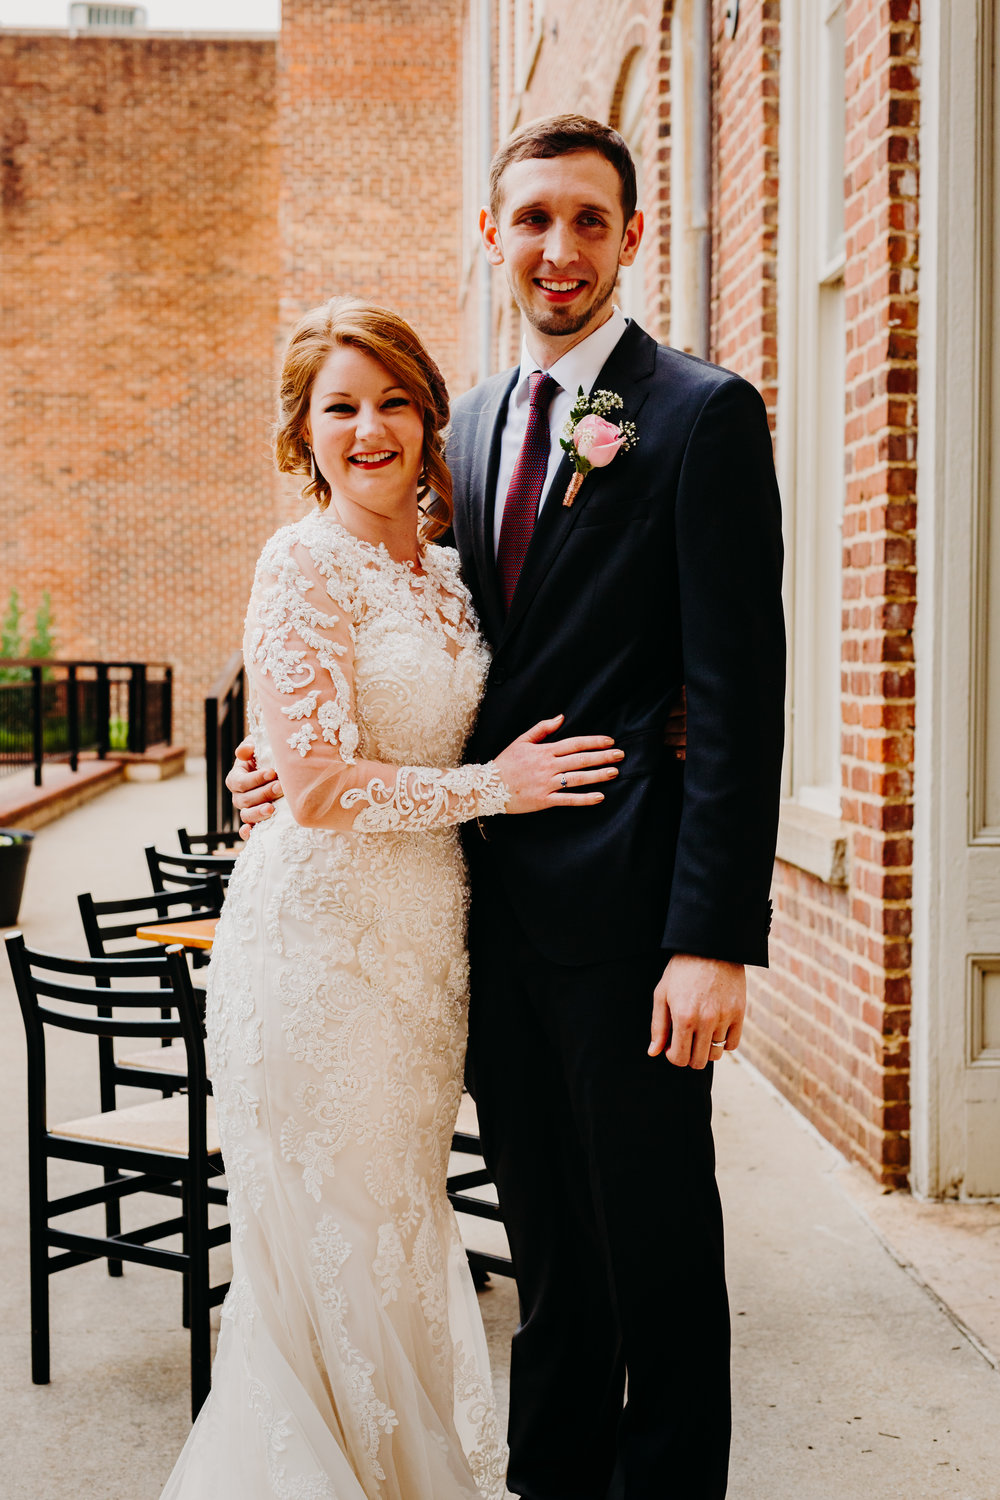 Bride and groom after ceremony downtown Raleigh wedding